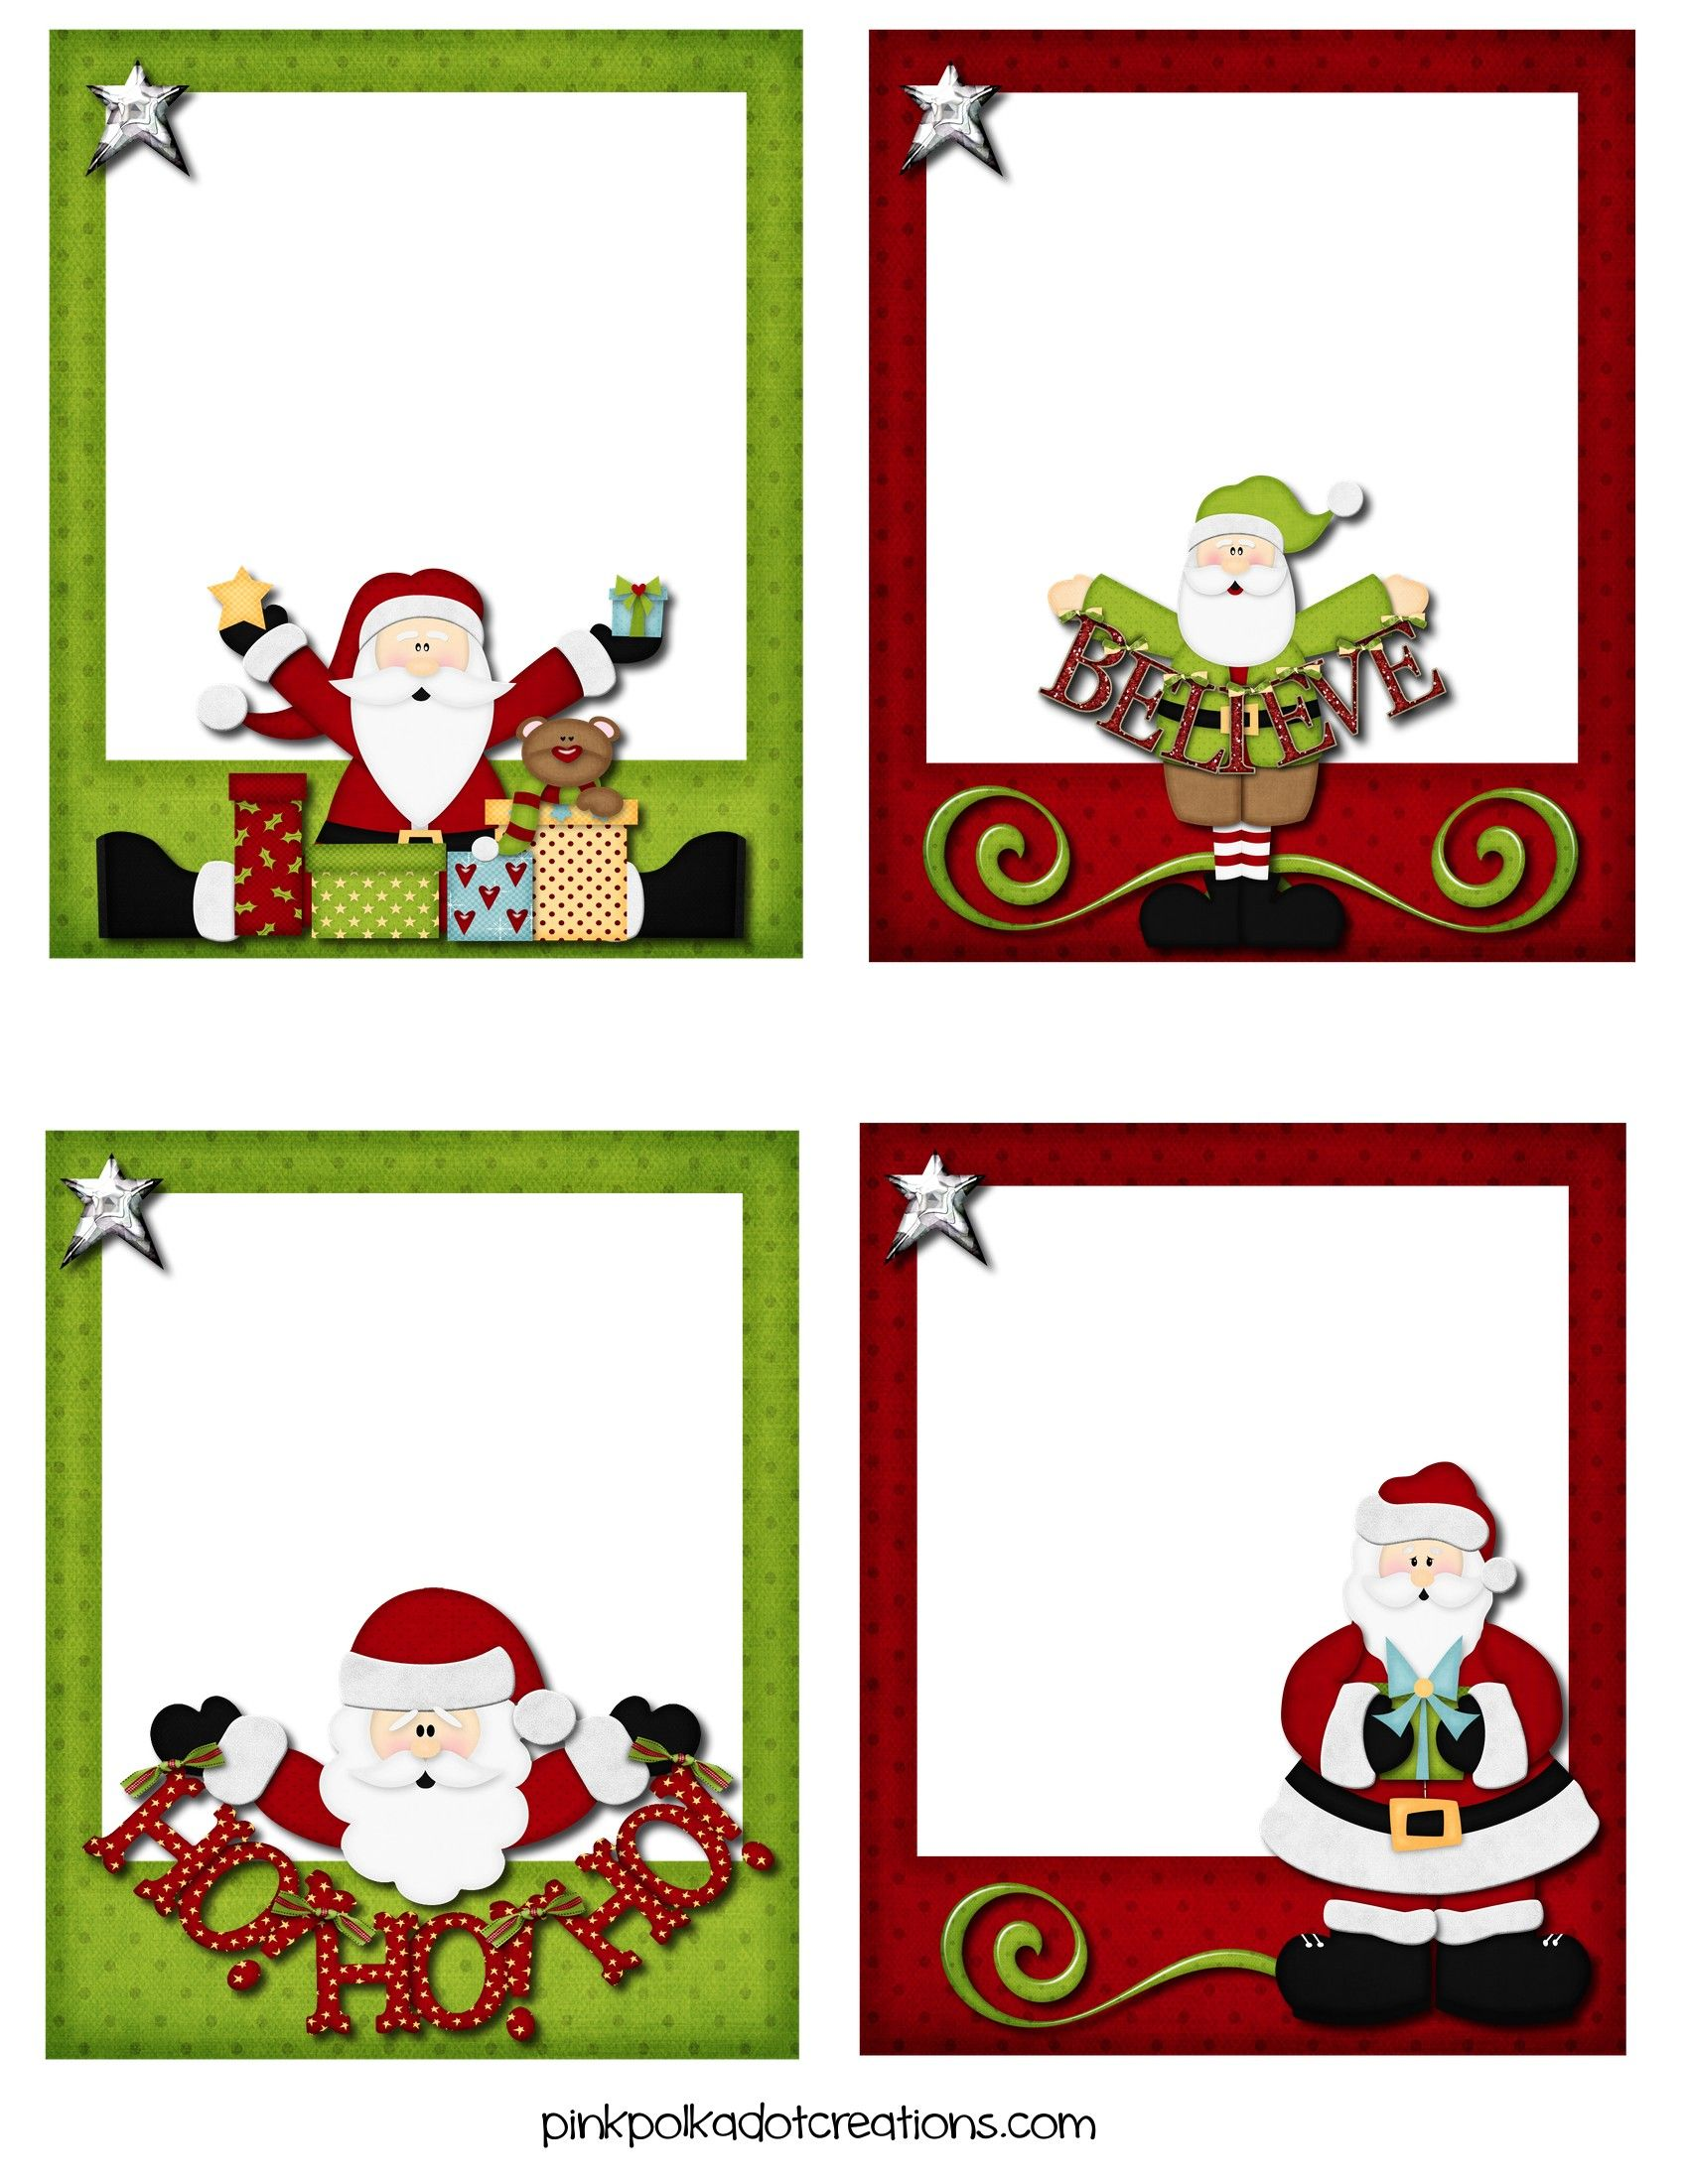 pin by monette peralta on christmas pinterest christmas tag